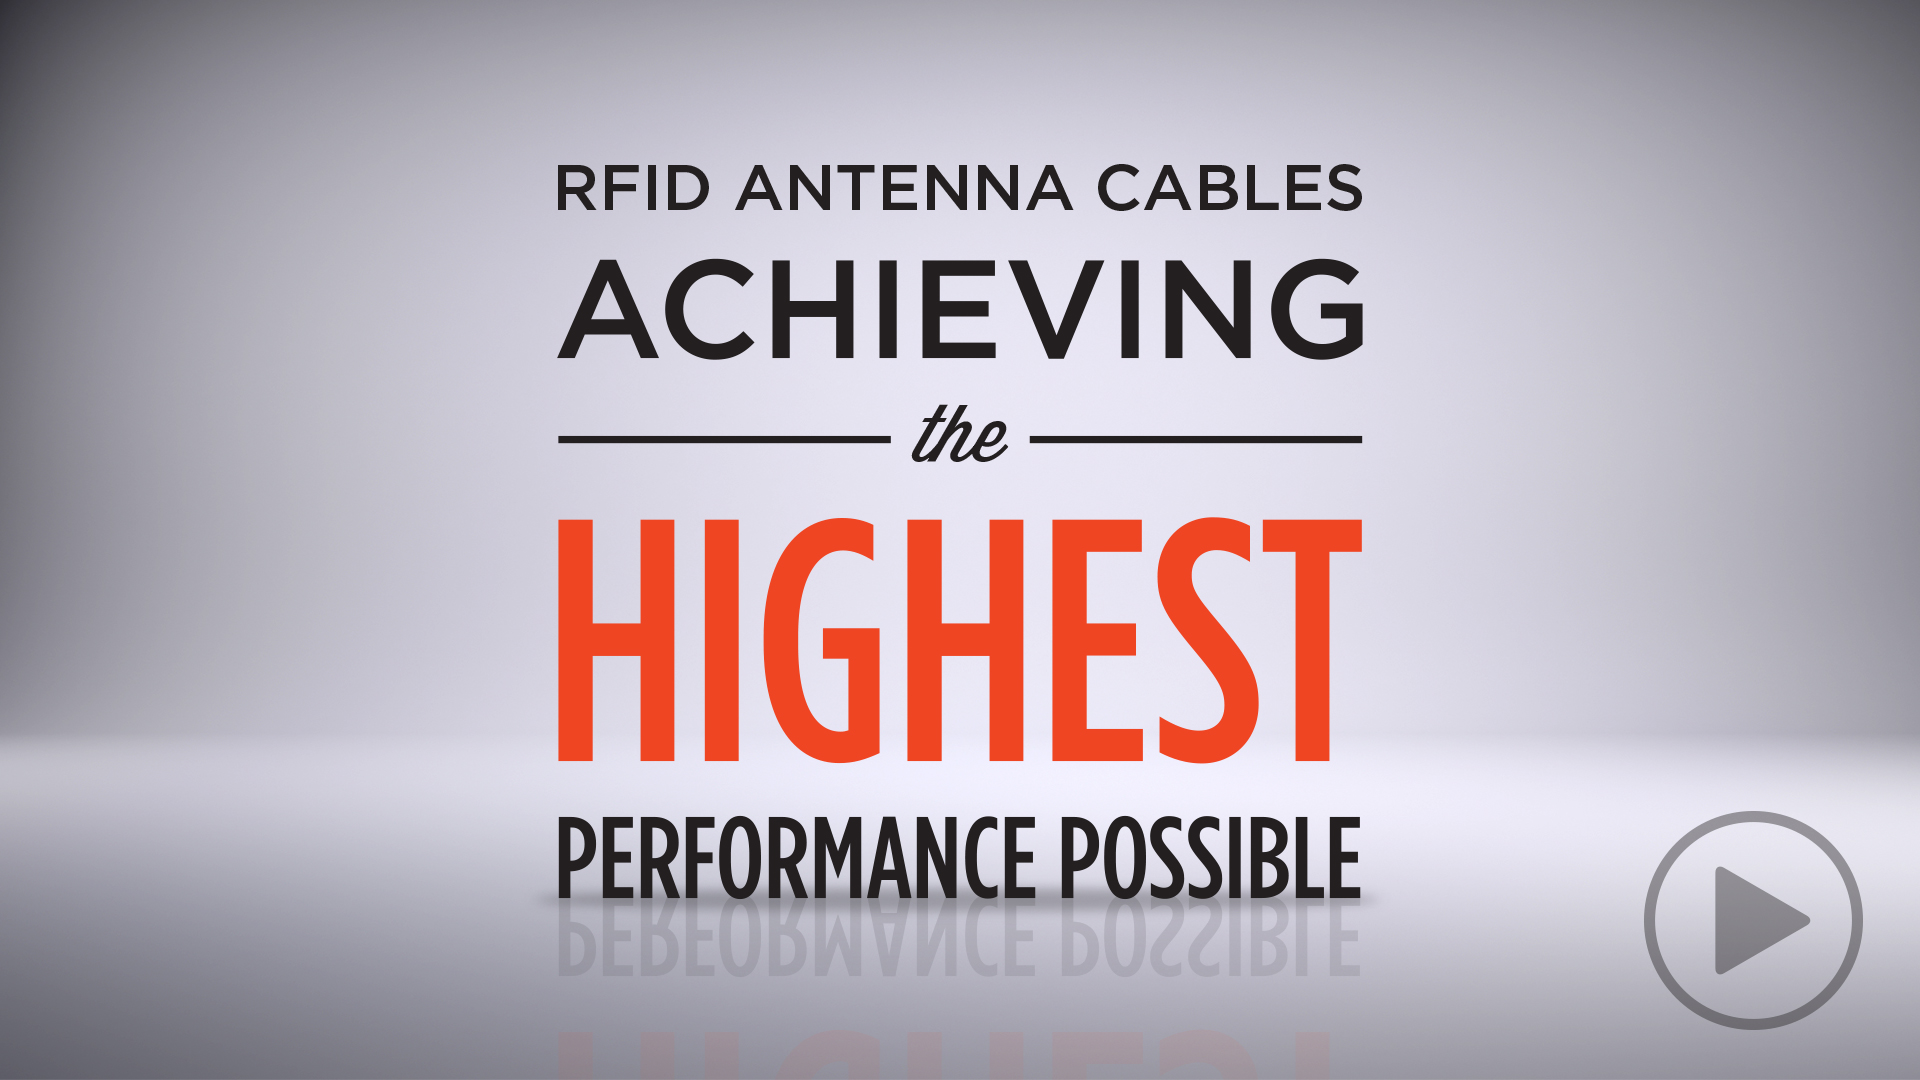 RFID Antenna Cables: Achieving the Highest Performance Possible